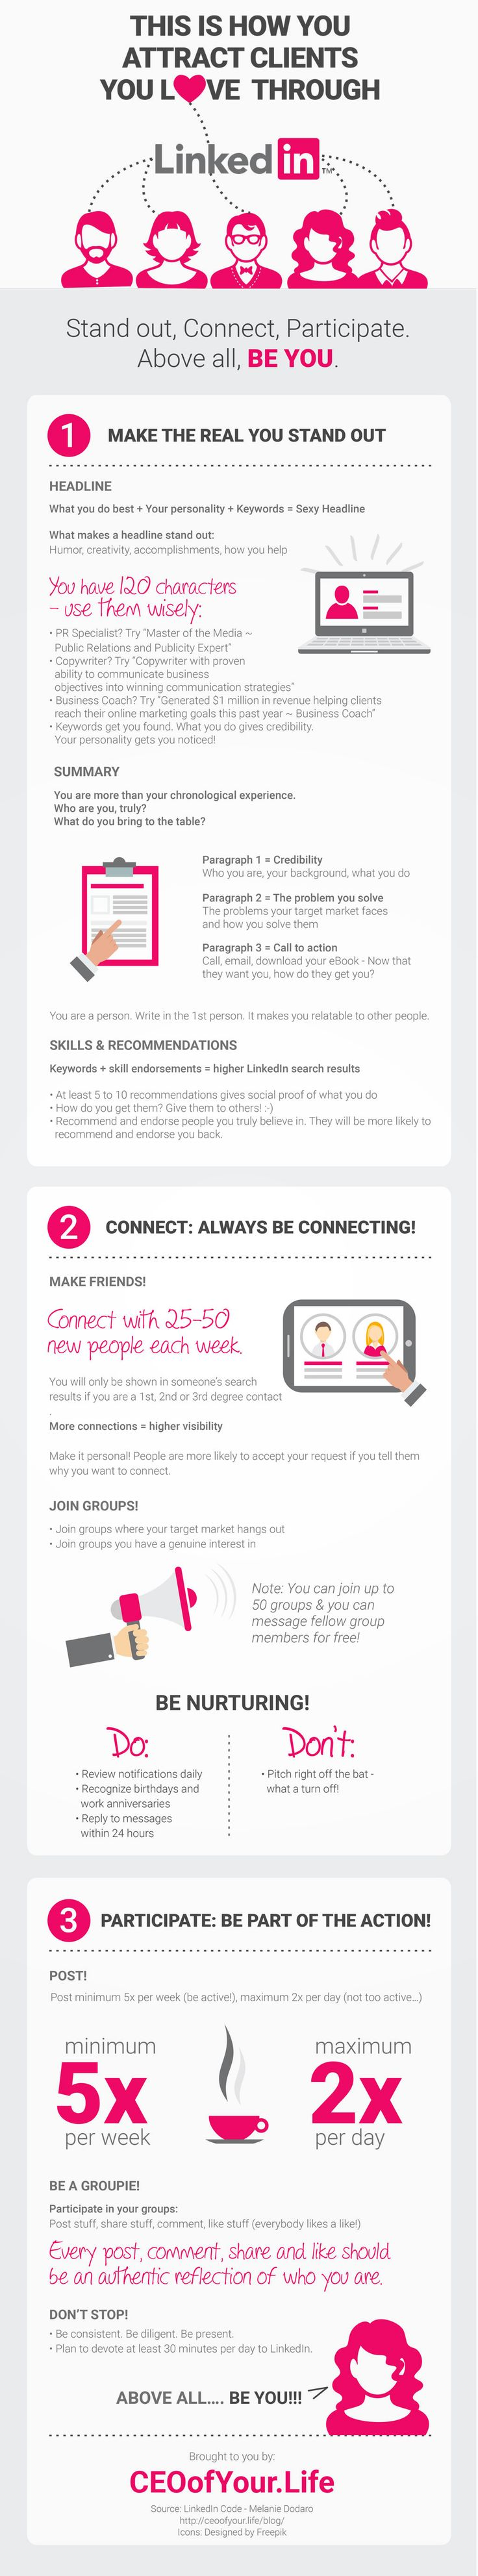 Just Be Yourself on LinkedIn -- and Watch Business Boom. (Infographic)